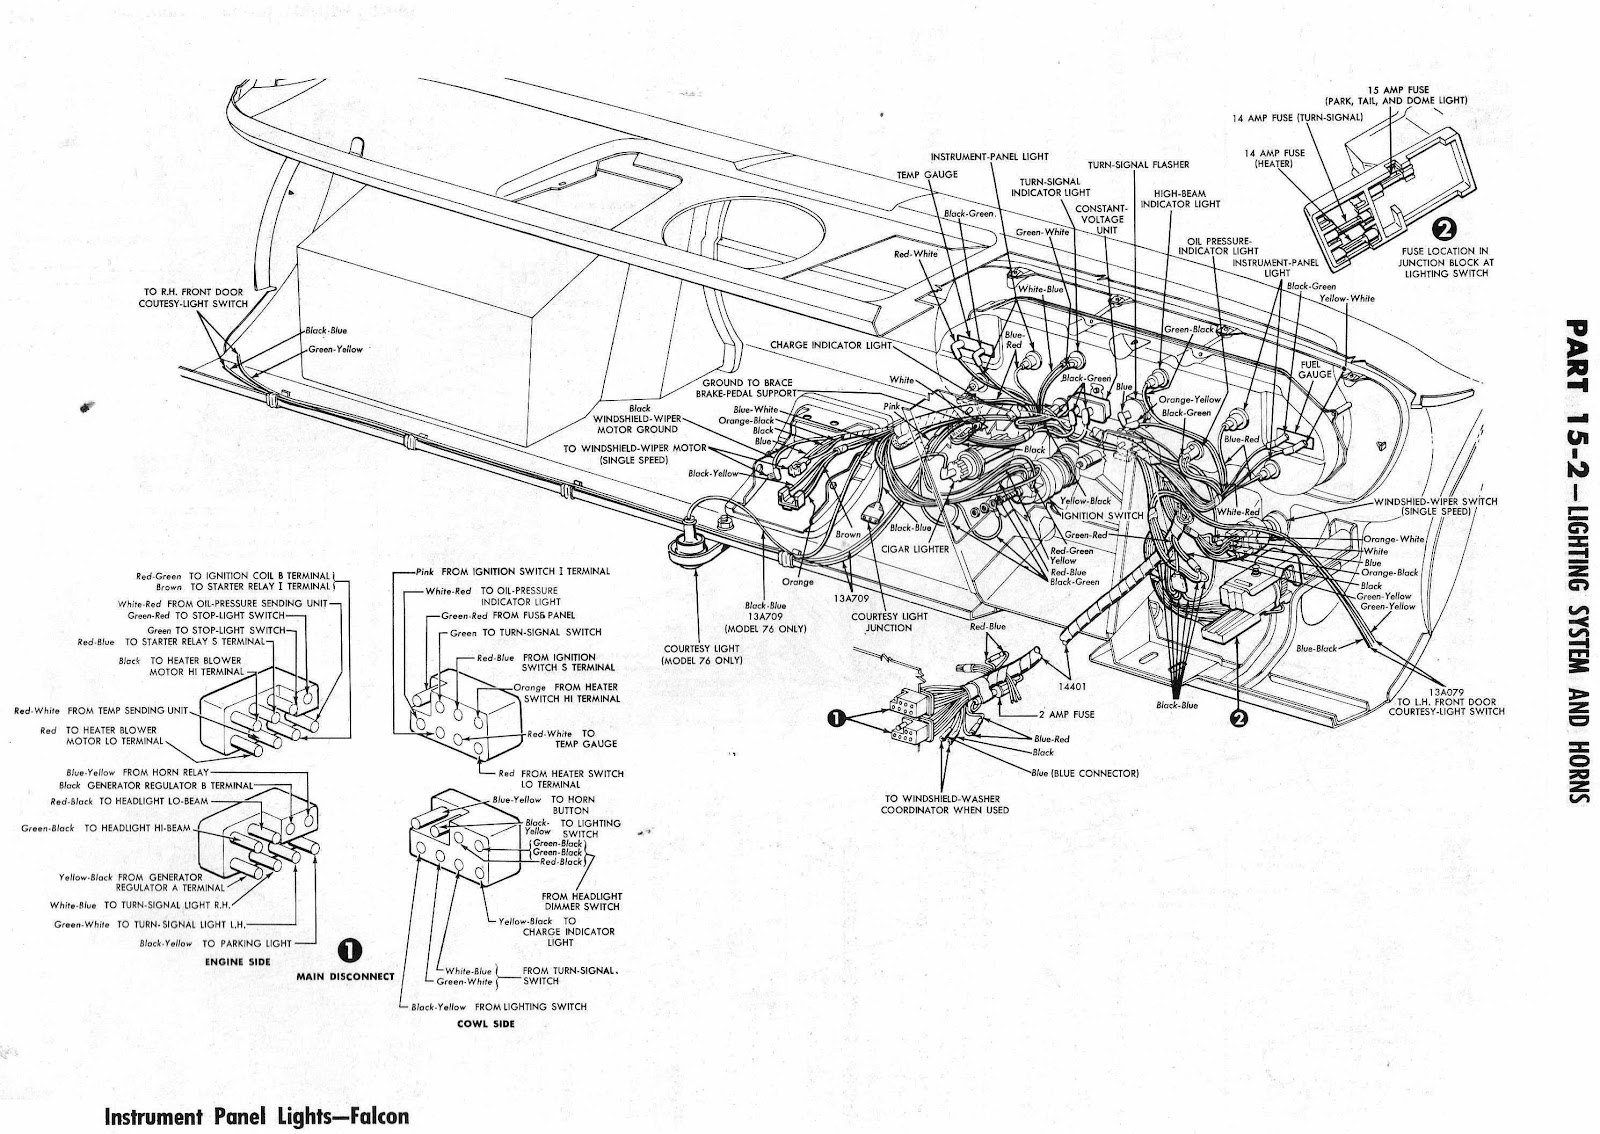 Ford+Falcon+1964+Lighting+System+and+Horns+Wiring+Diagram au falcon wiring diagram falcon guide \u2022 wiring diagrams j squared co  at sewacar.co